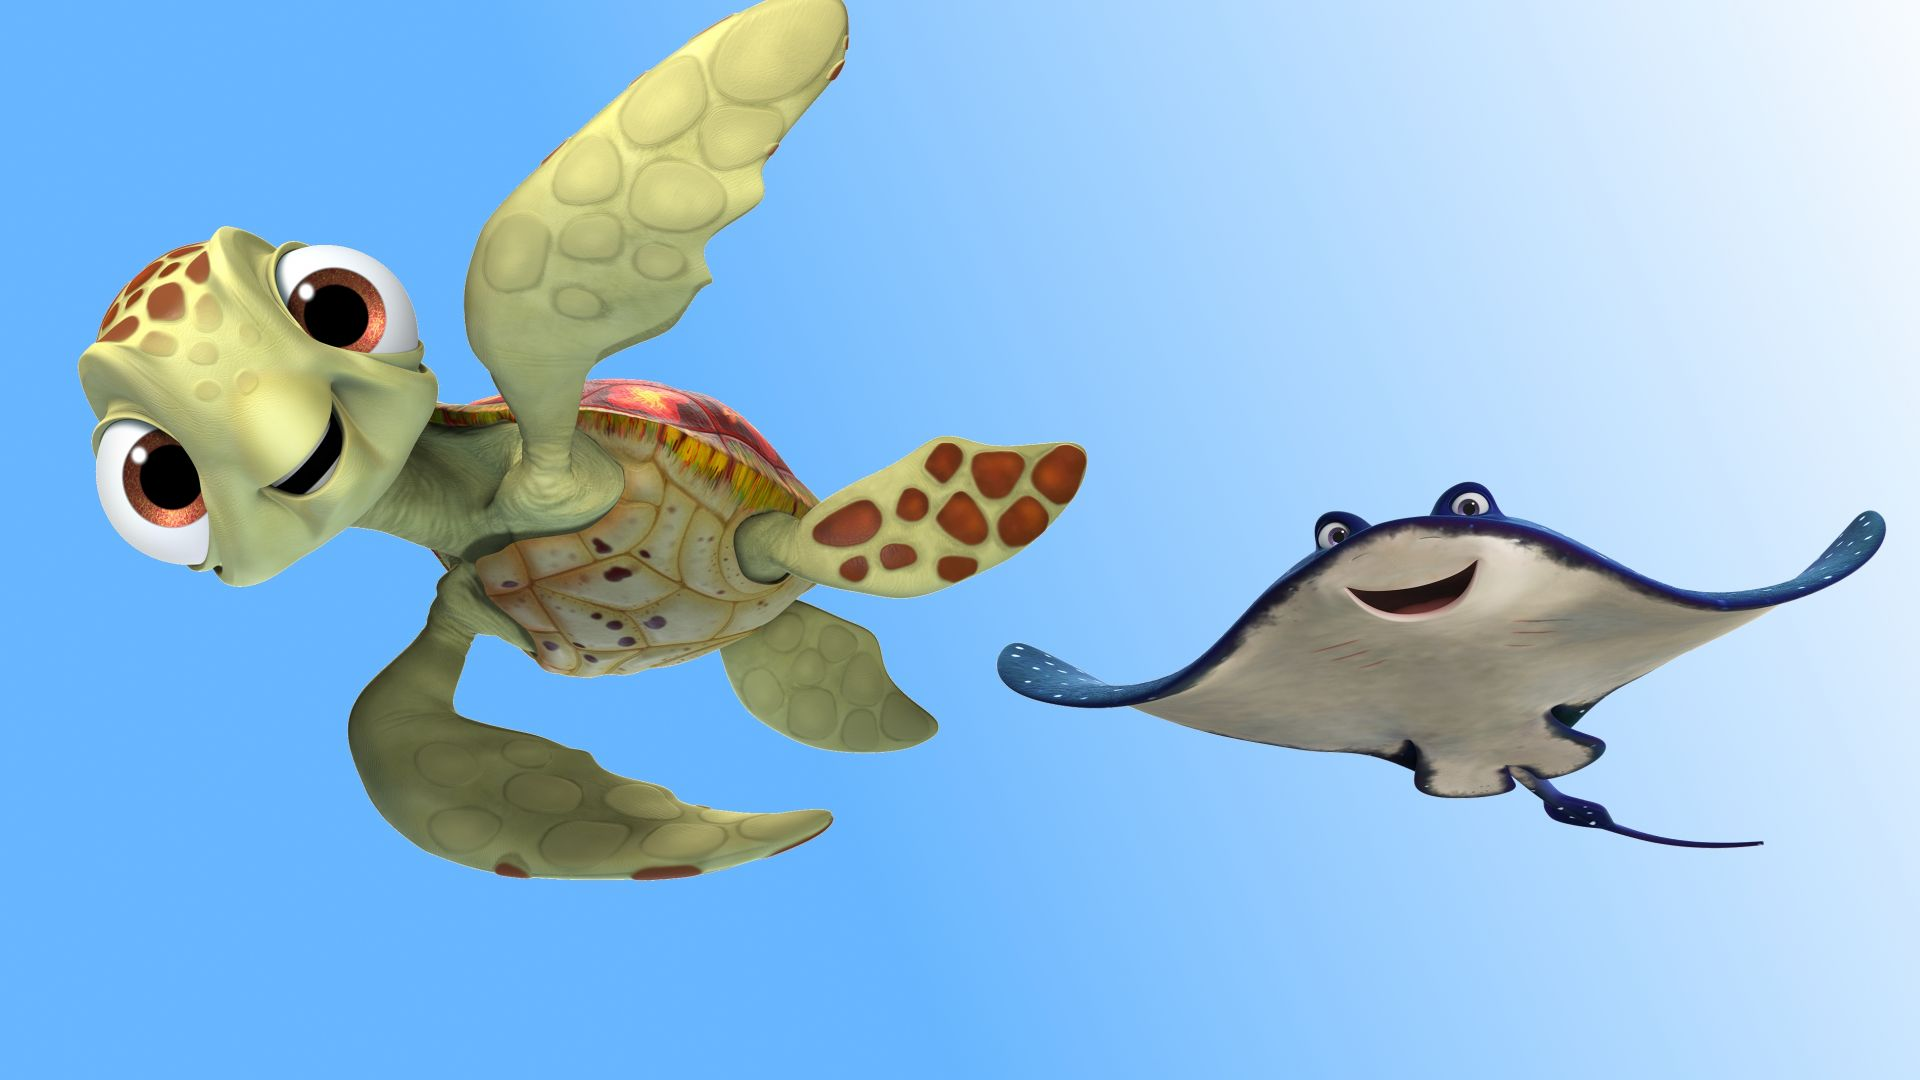 Wallpaper finding dory ramp turtle pixar animation for Dory fish movie